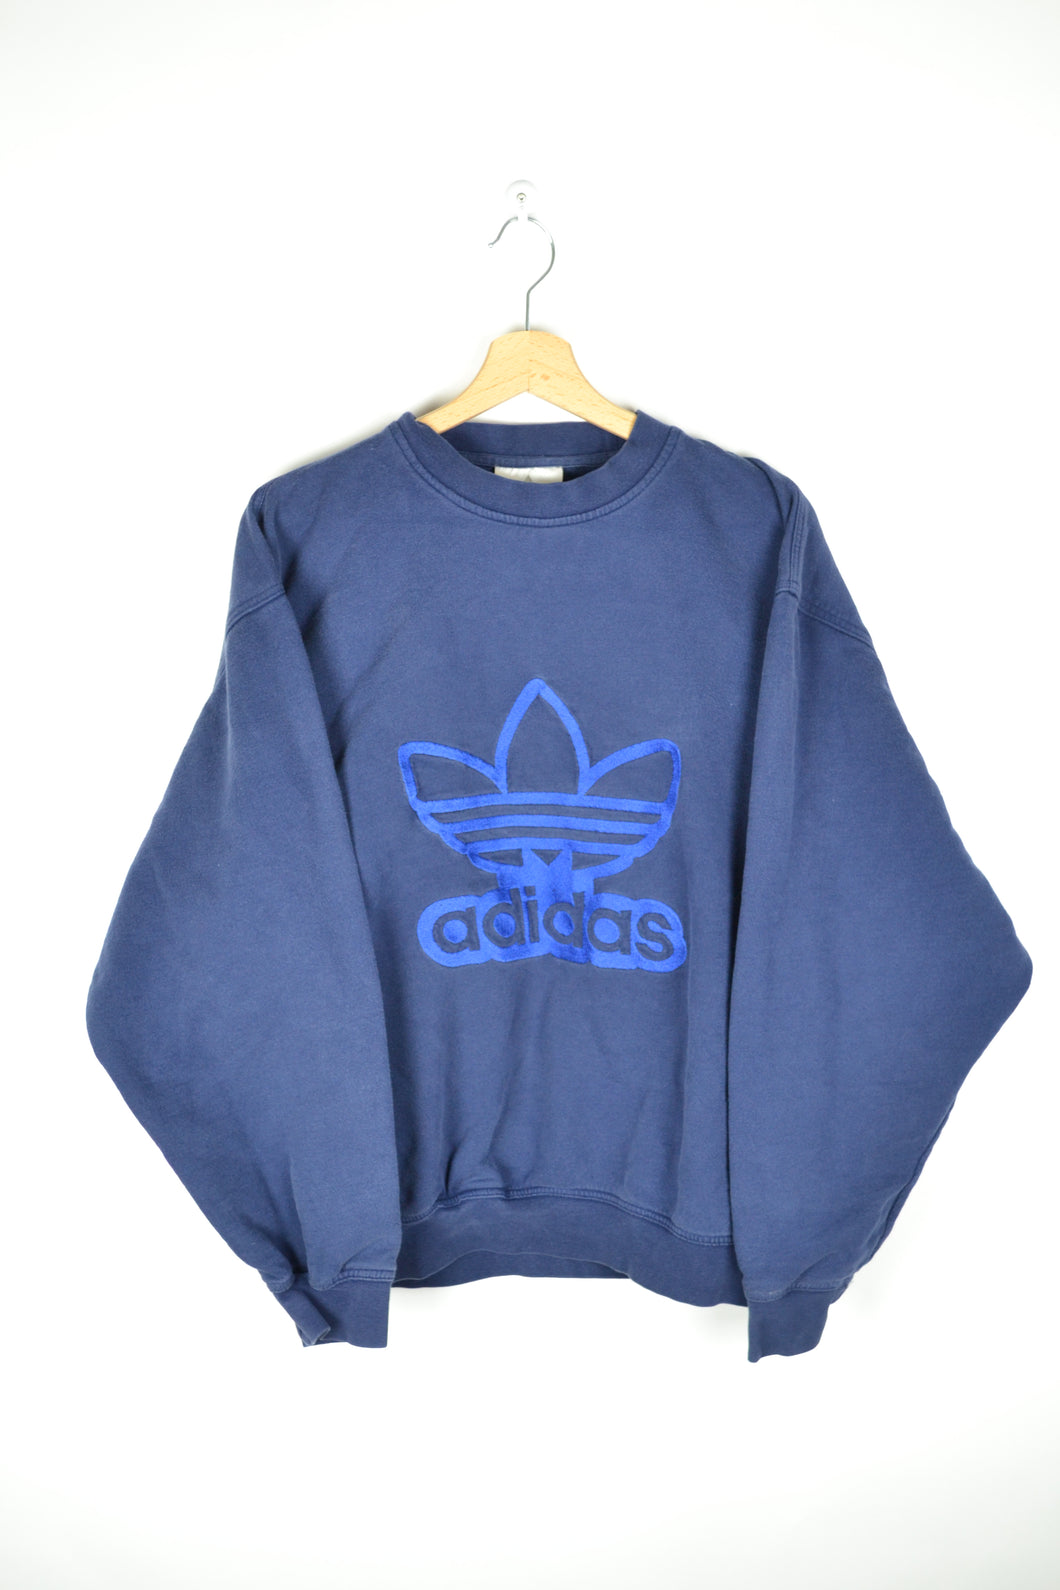 Vintage 90s - Spell out adidas Blue Sweatshirt - Size L